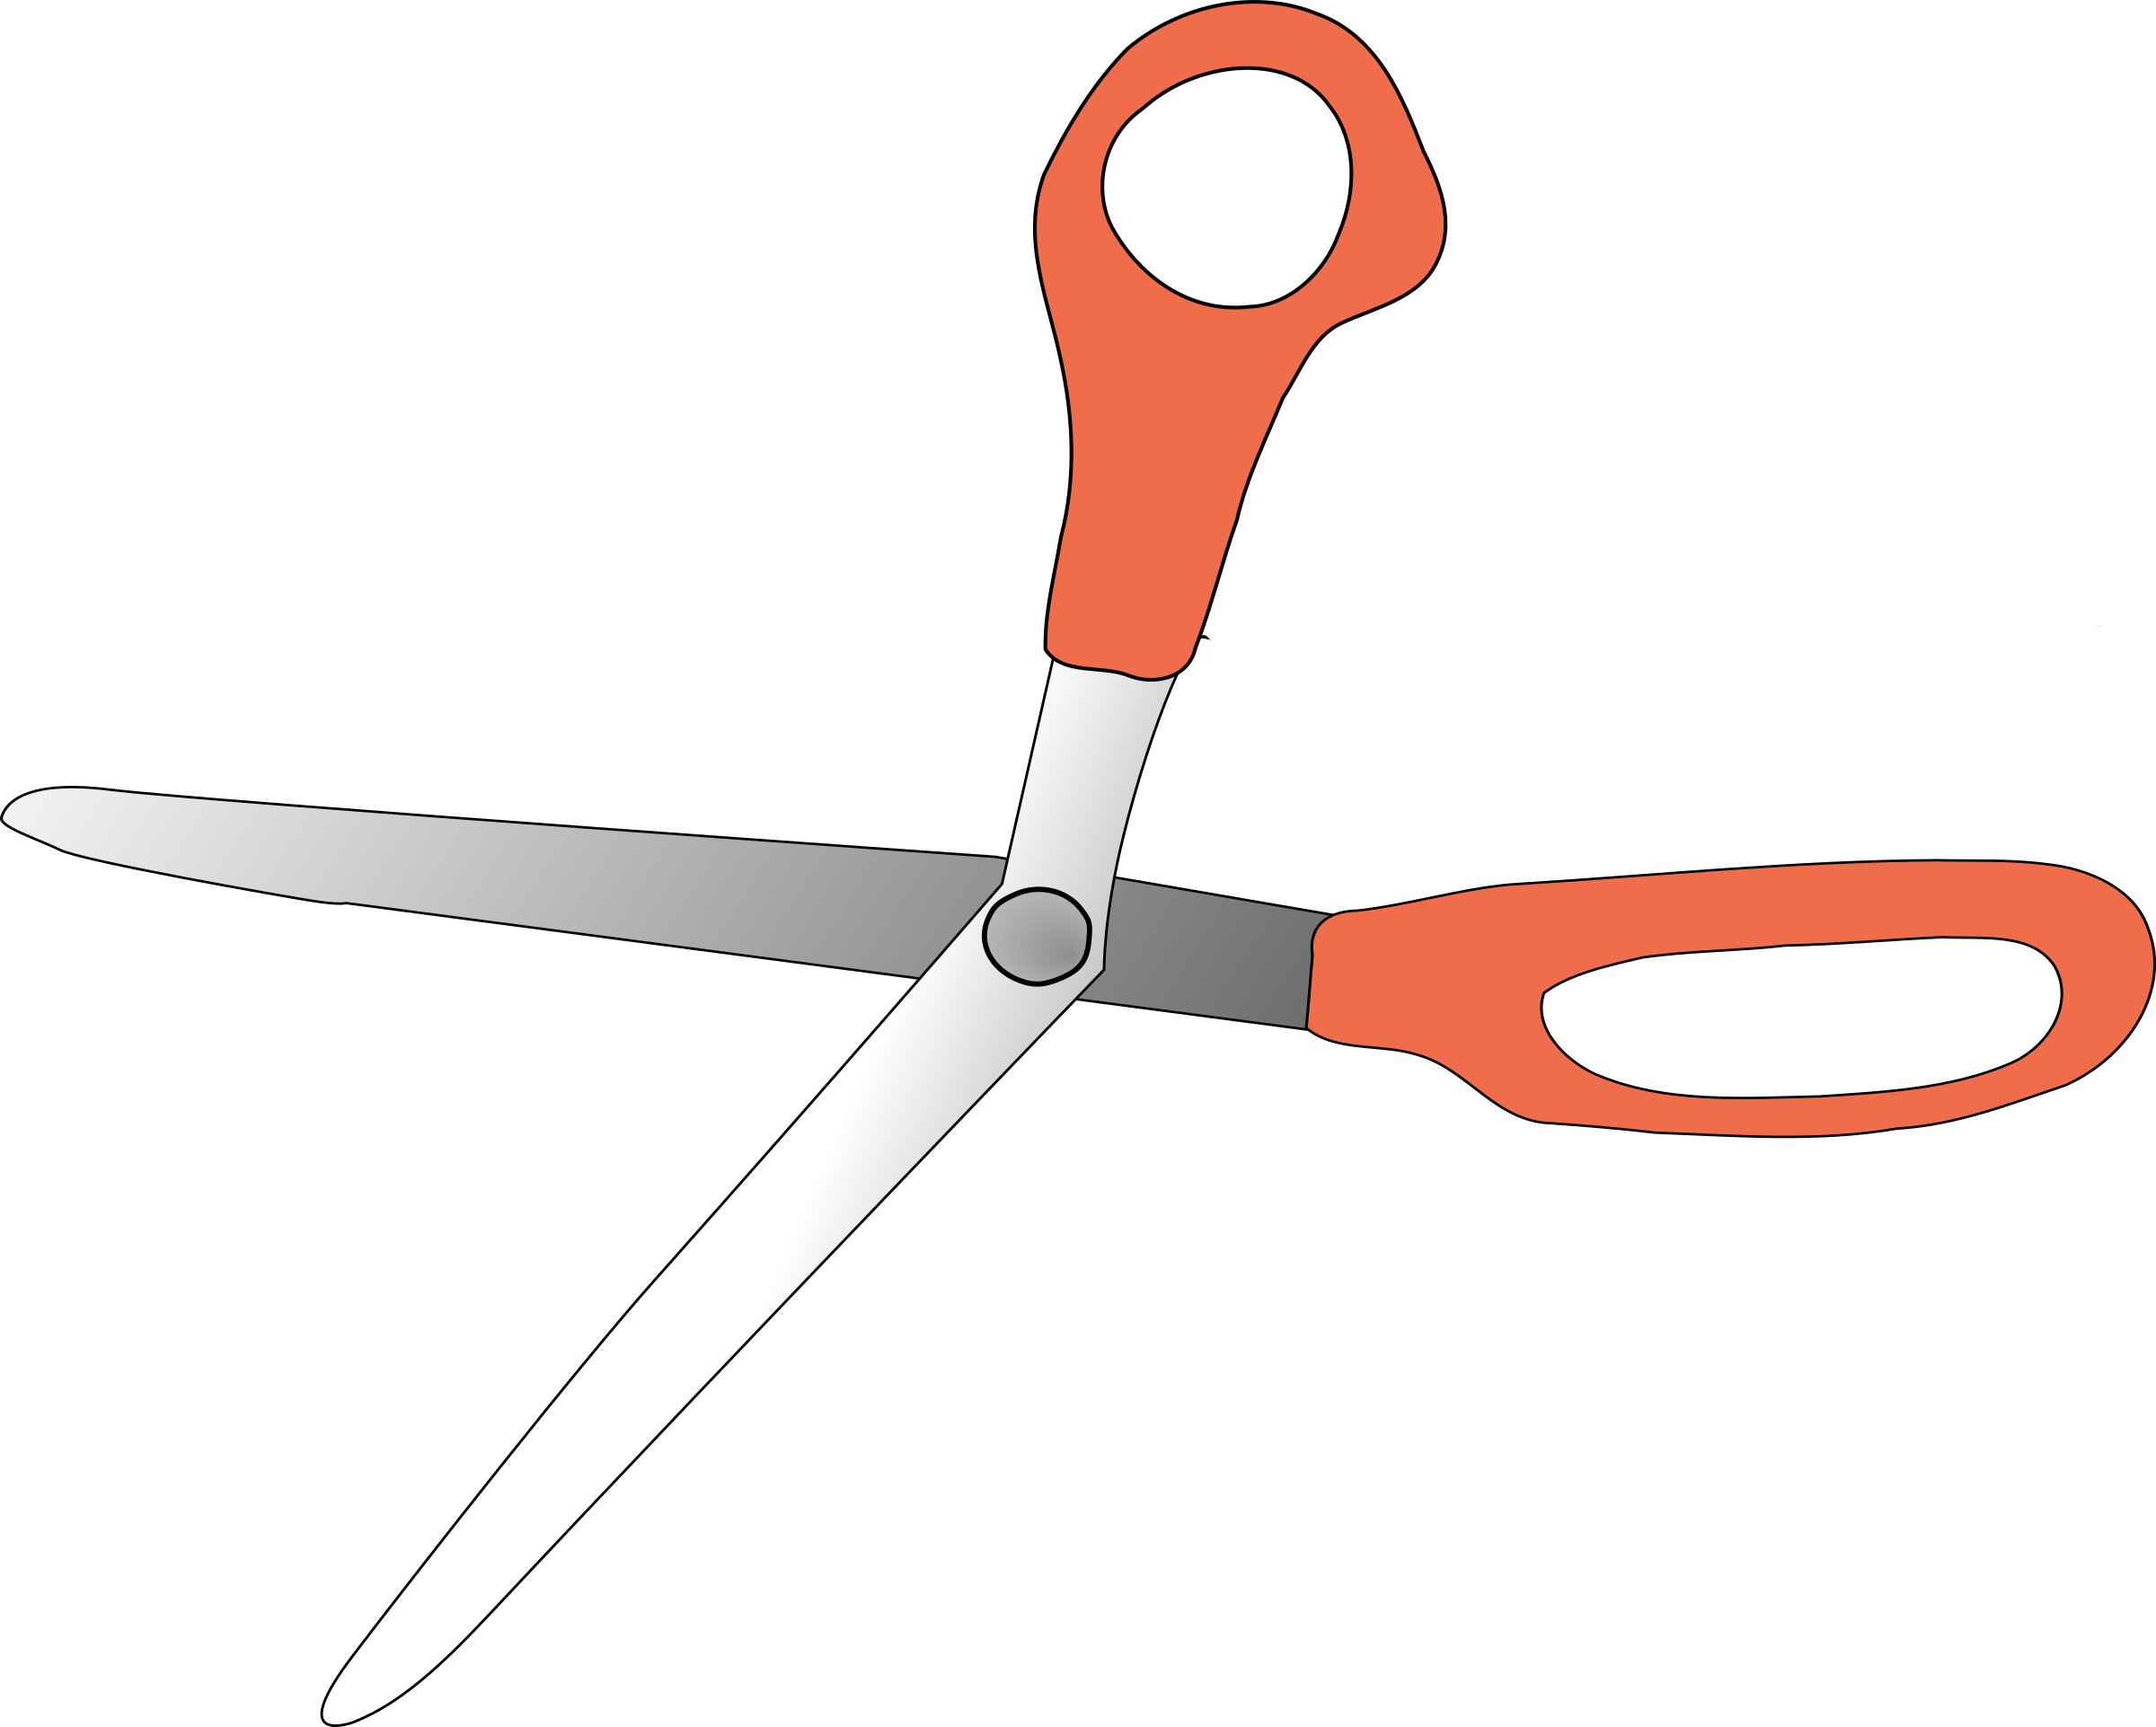 Clipart scissors animation. Wide open big image